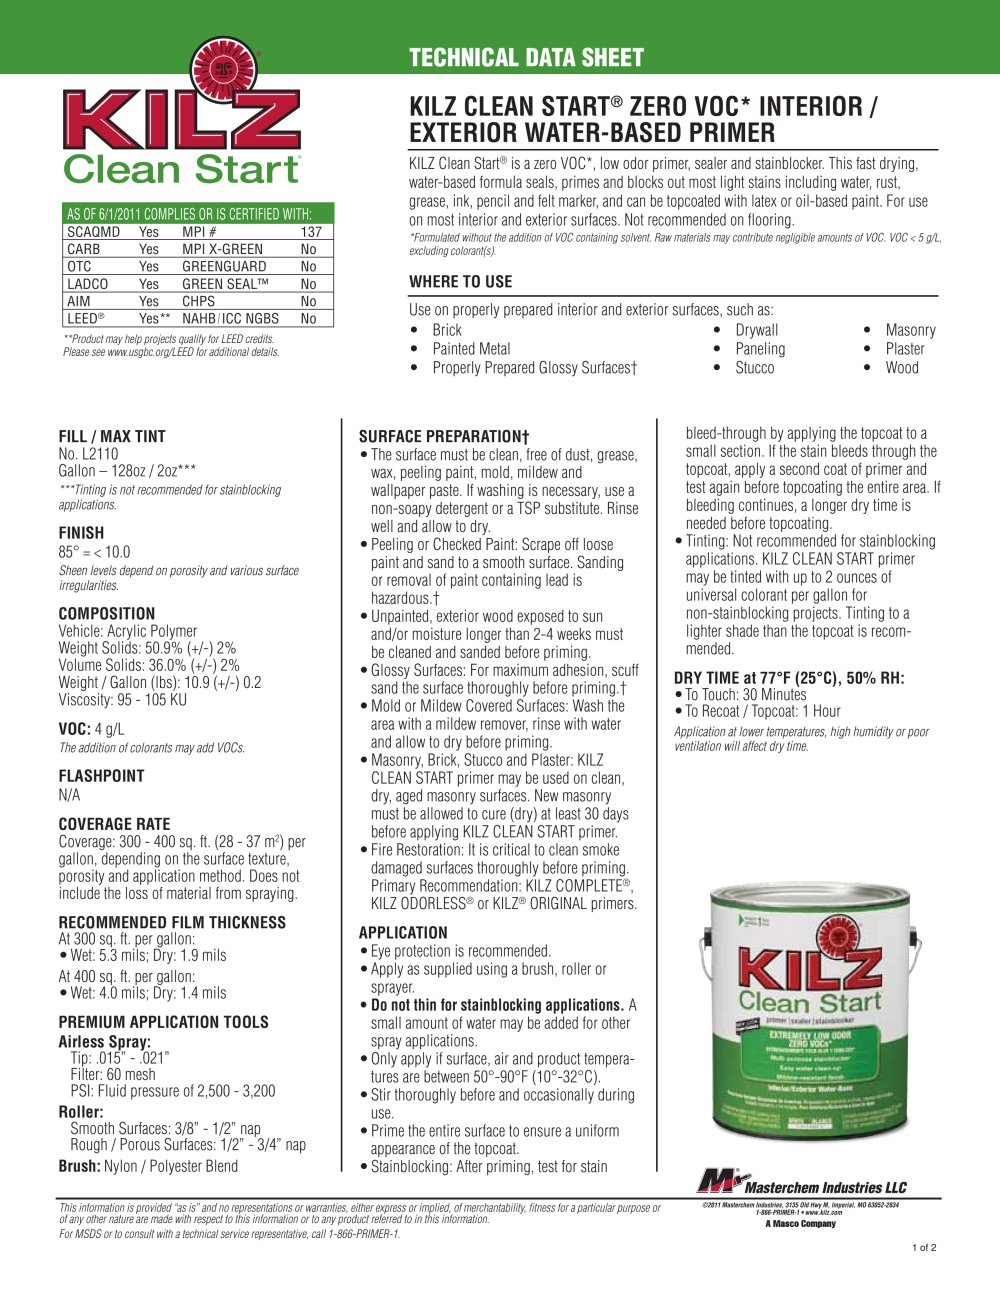 KILZ CLEAN START® ZERO VOC* INTERIOR / EXTERIOR WATER-BASED PRIMER ...